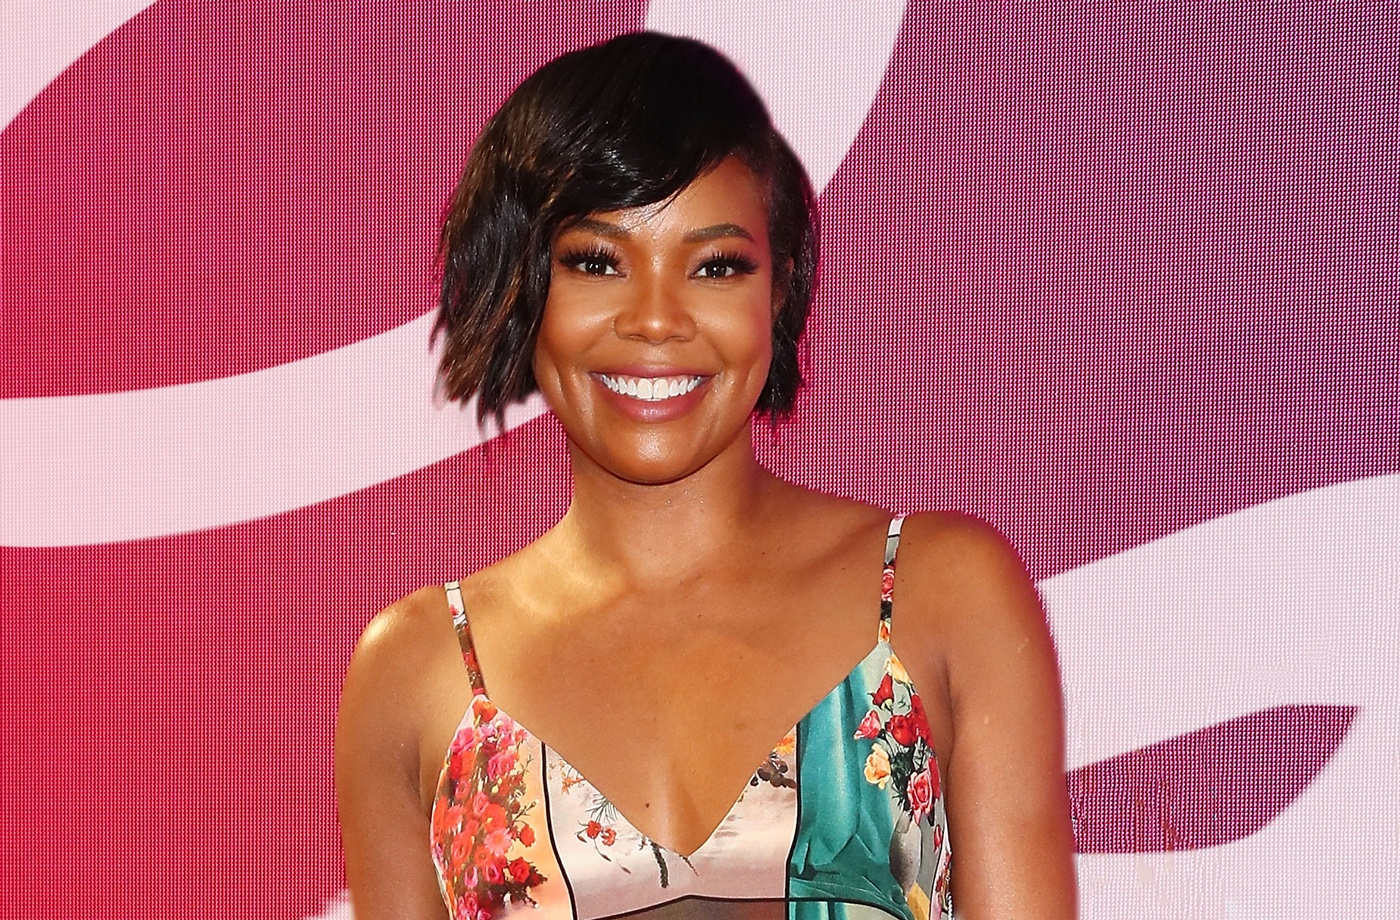 Thumbnail for Everything to Know About Adenomyosis, the Condition Gabrielle Union Says Compromised Her Fertility